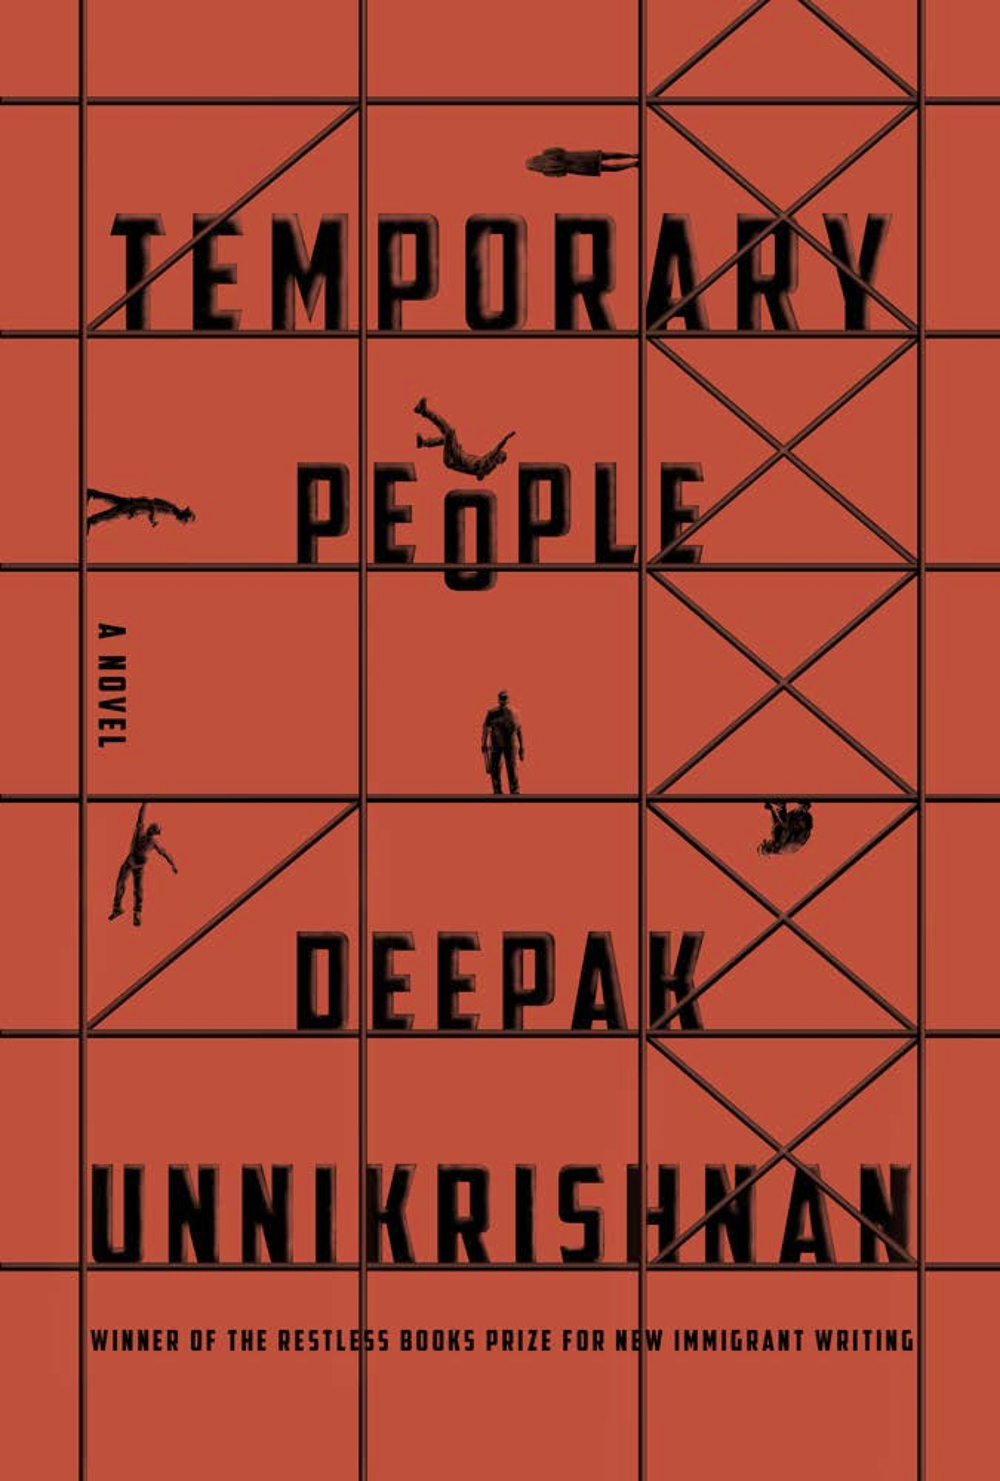 Temporary+People,+by+Deepak+Unnikrushnan+-+9781632061423.jpg